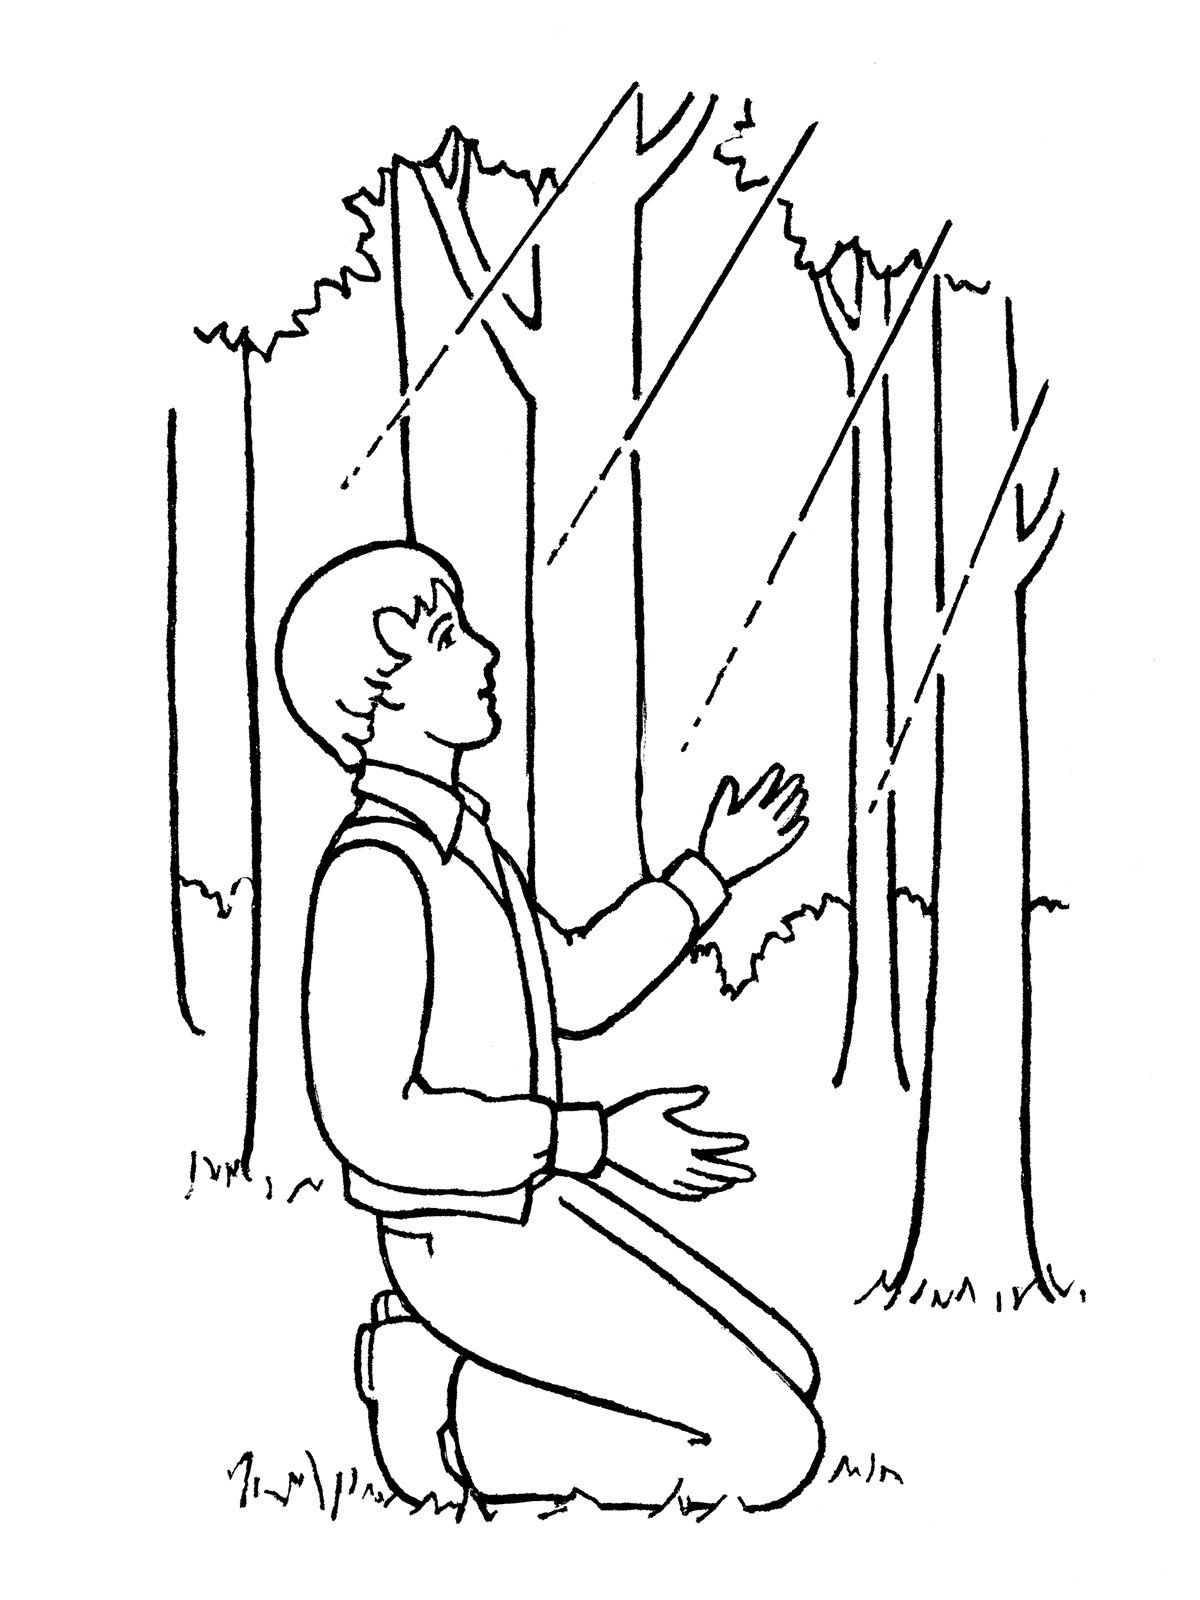 joseph smith coloring pages Joseph Smith Sees a Light Overhead joseph smith coloring pages